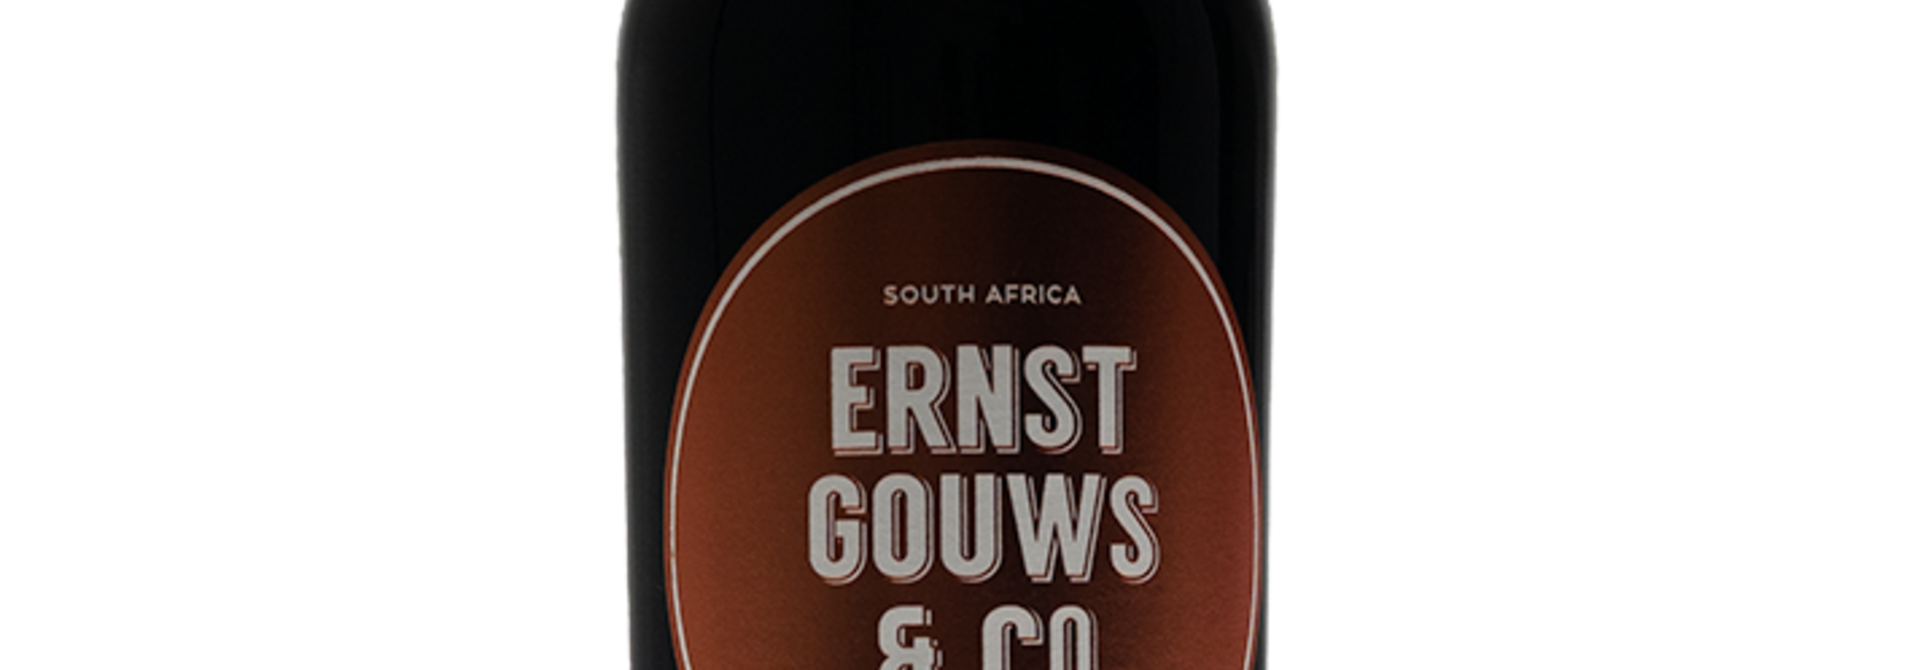 Ernst Gouws & Co Pinotage 2018